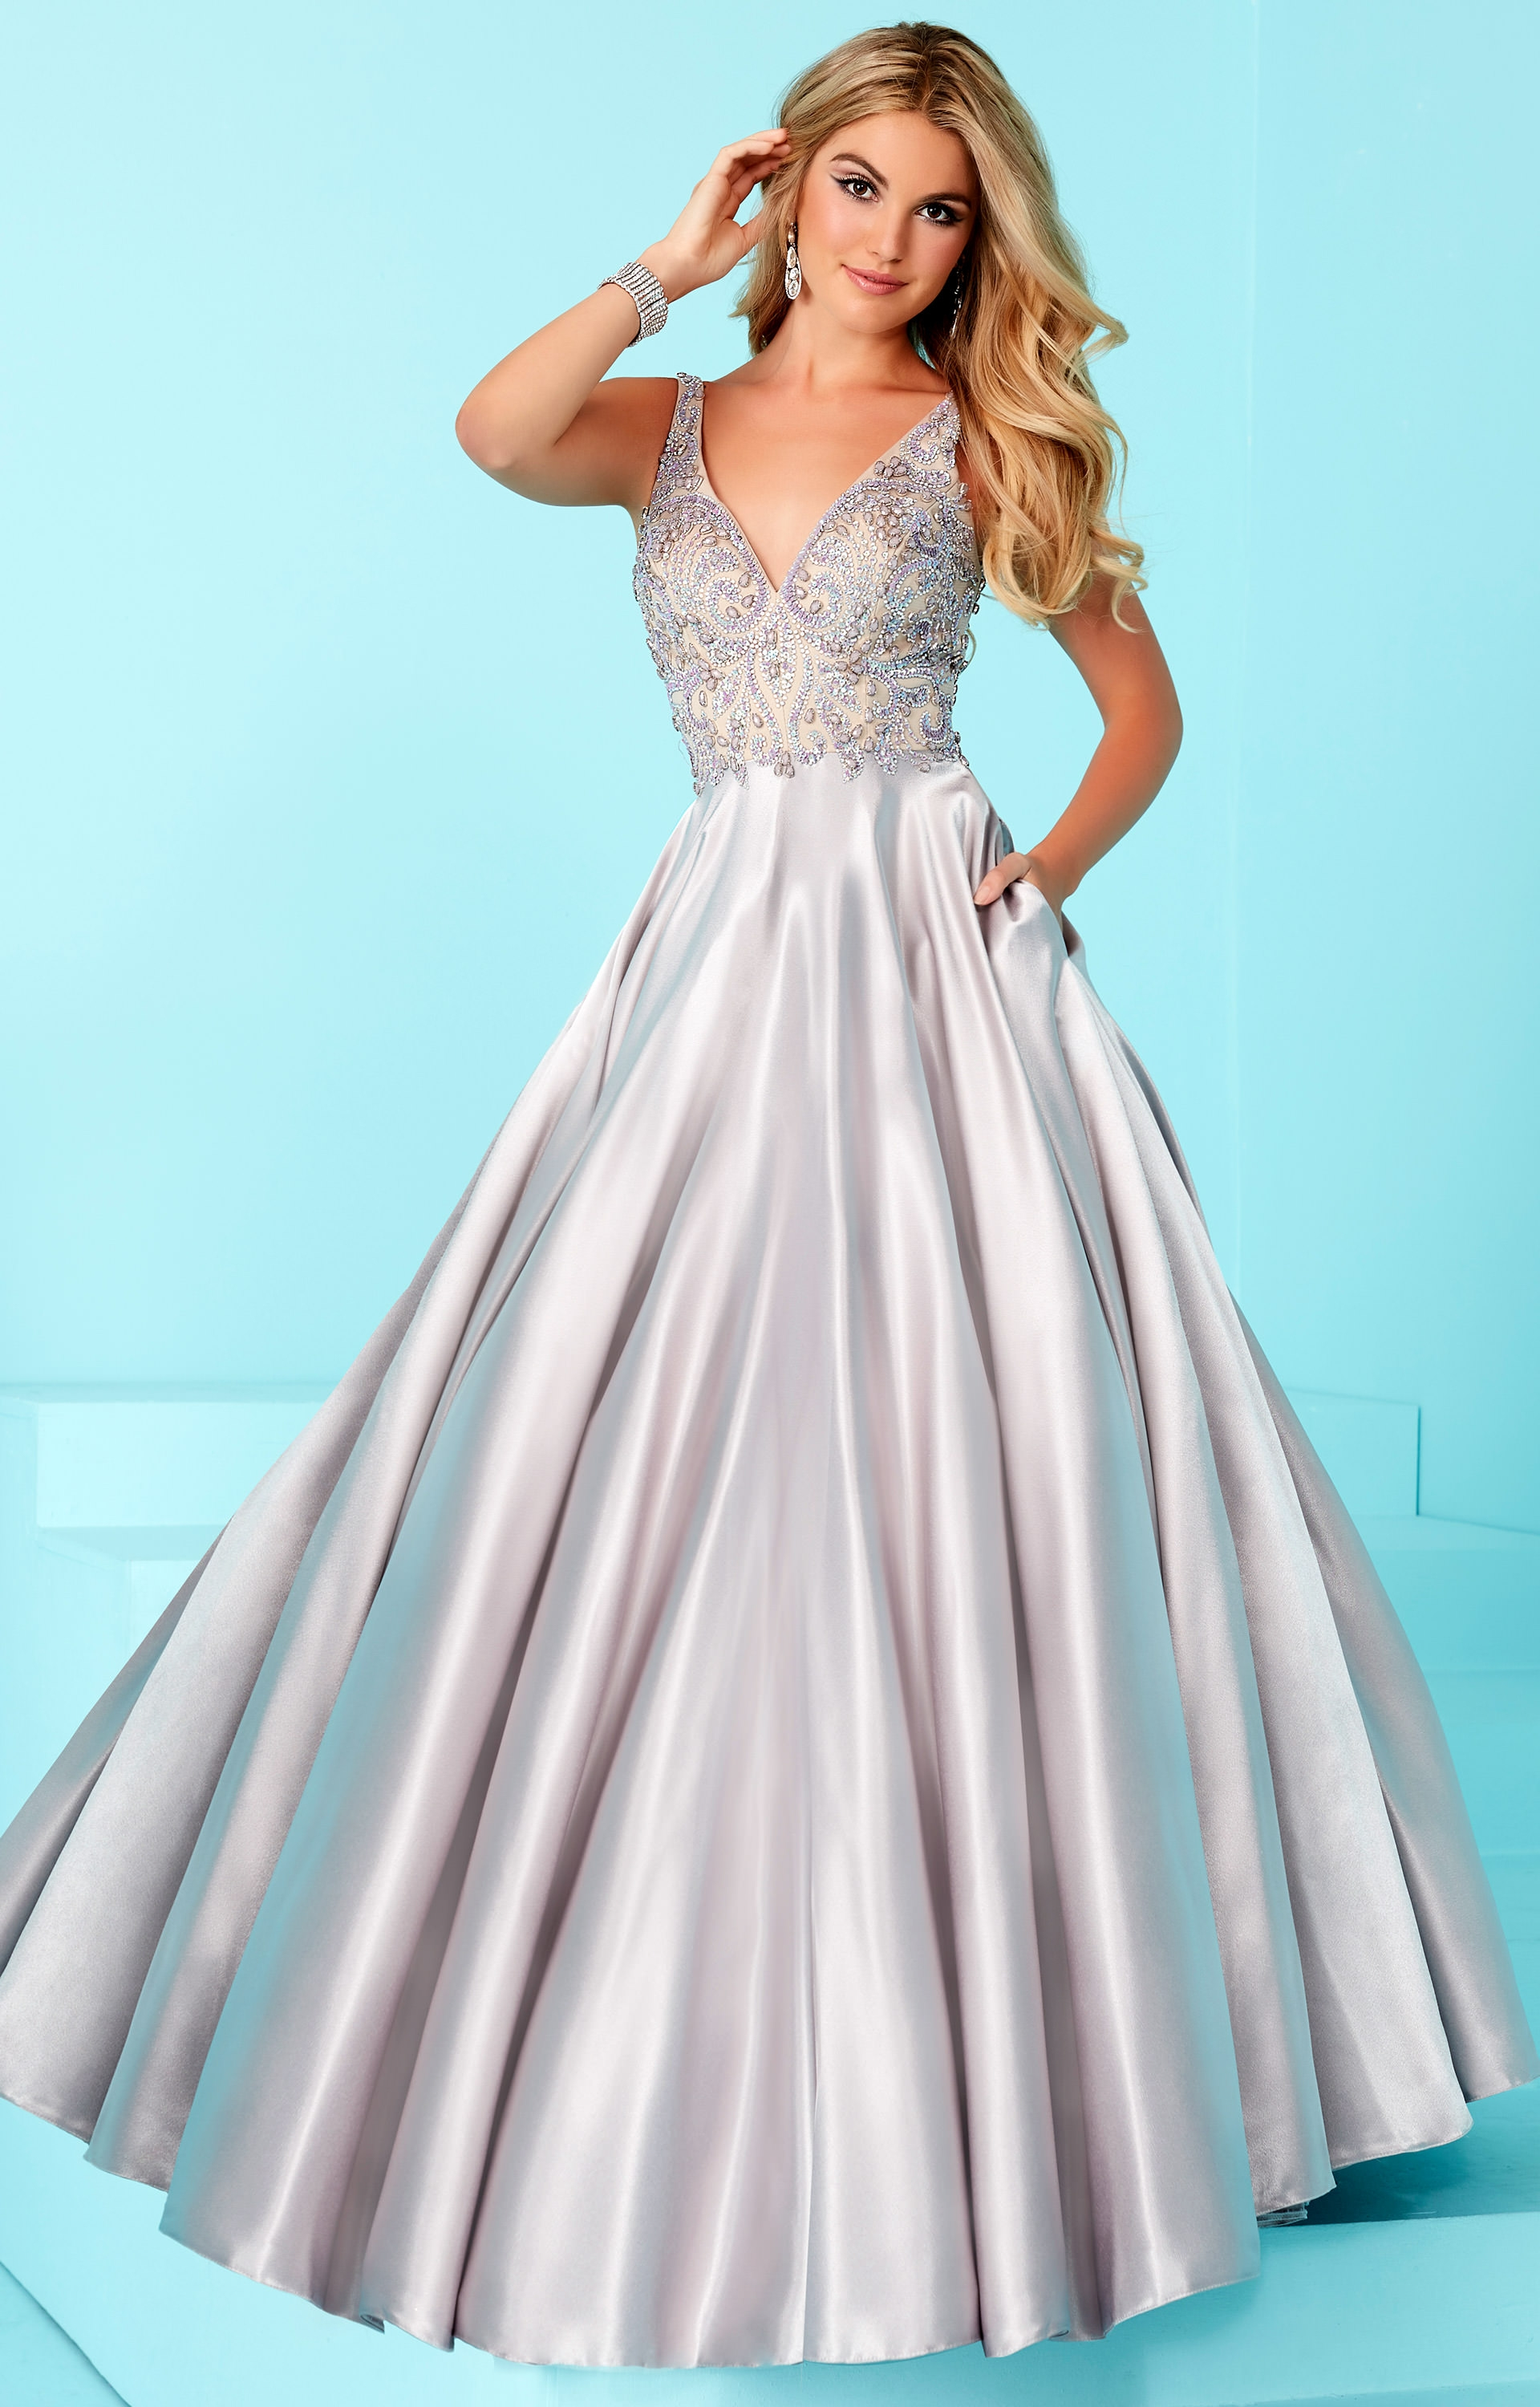 Tiffany Designs 16208 - Sleeveless Beaded Top Ball Gown Prom Dress